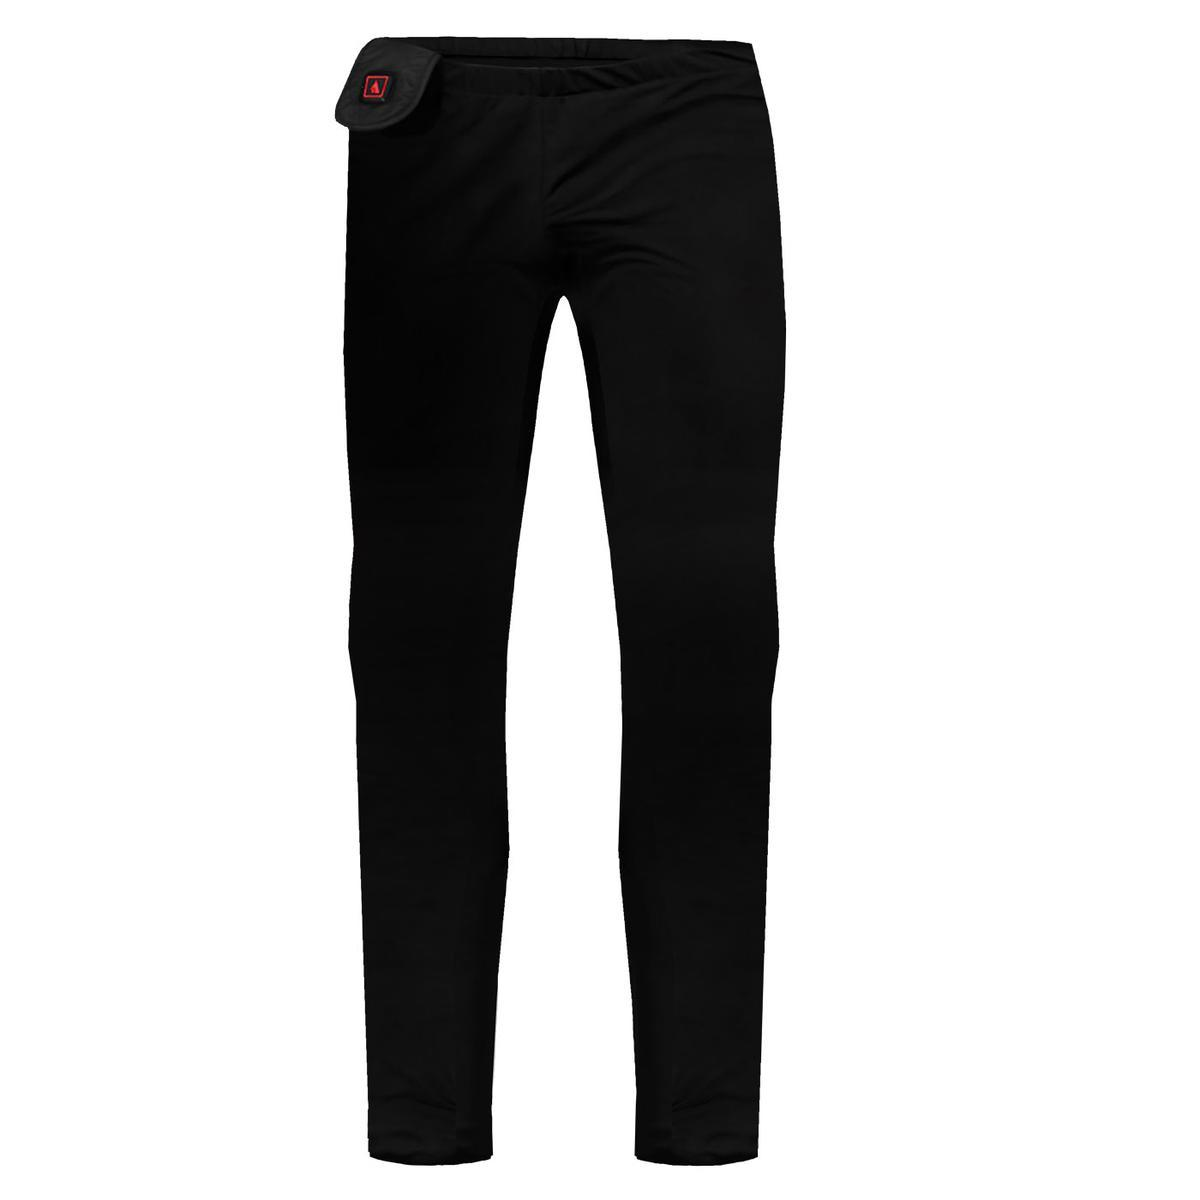 The ActionHeat battery heated base layers pants are revolutionary in the world of heated clothing. Using the patented 5V signal technology, it allows for any 5V battery to be used with the ActionHeat base layers. This allows for unlimited battery options